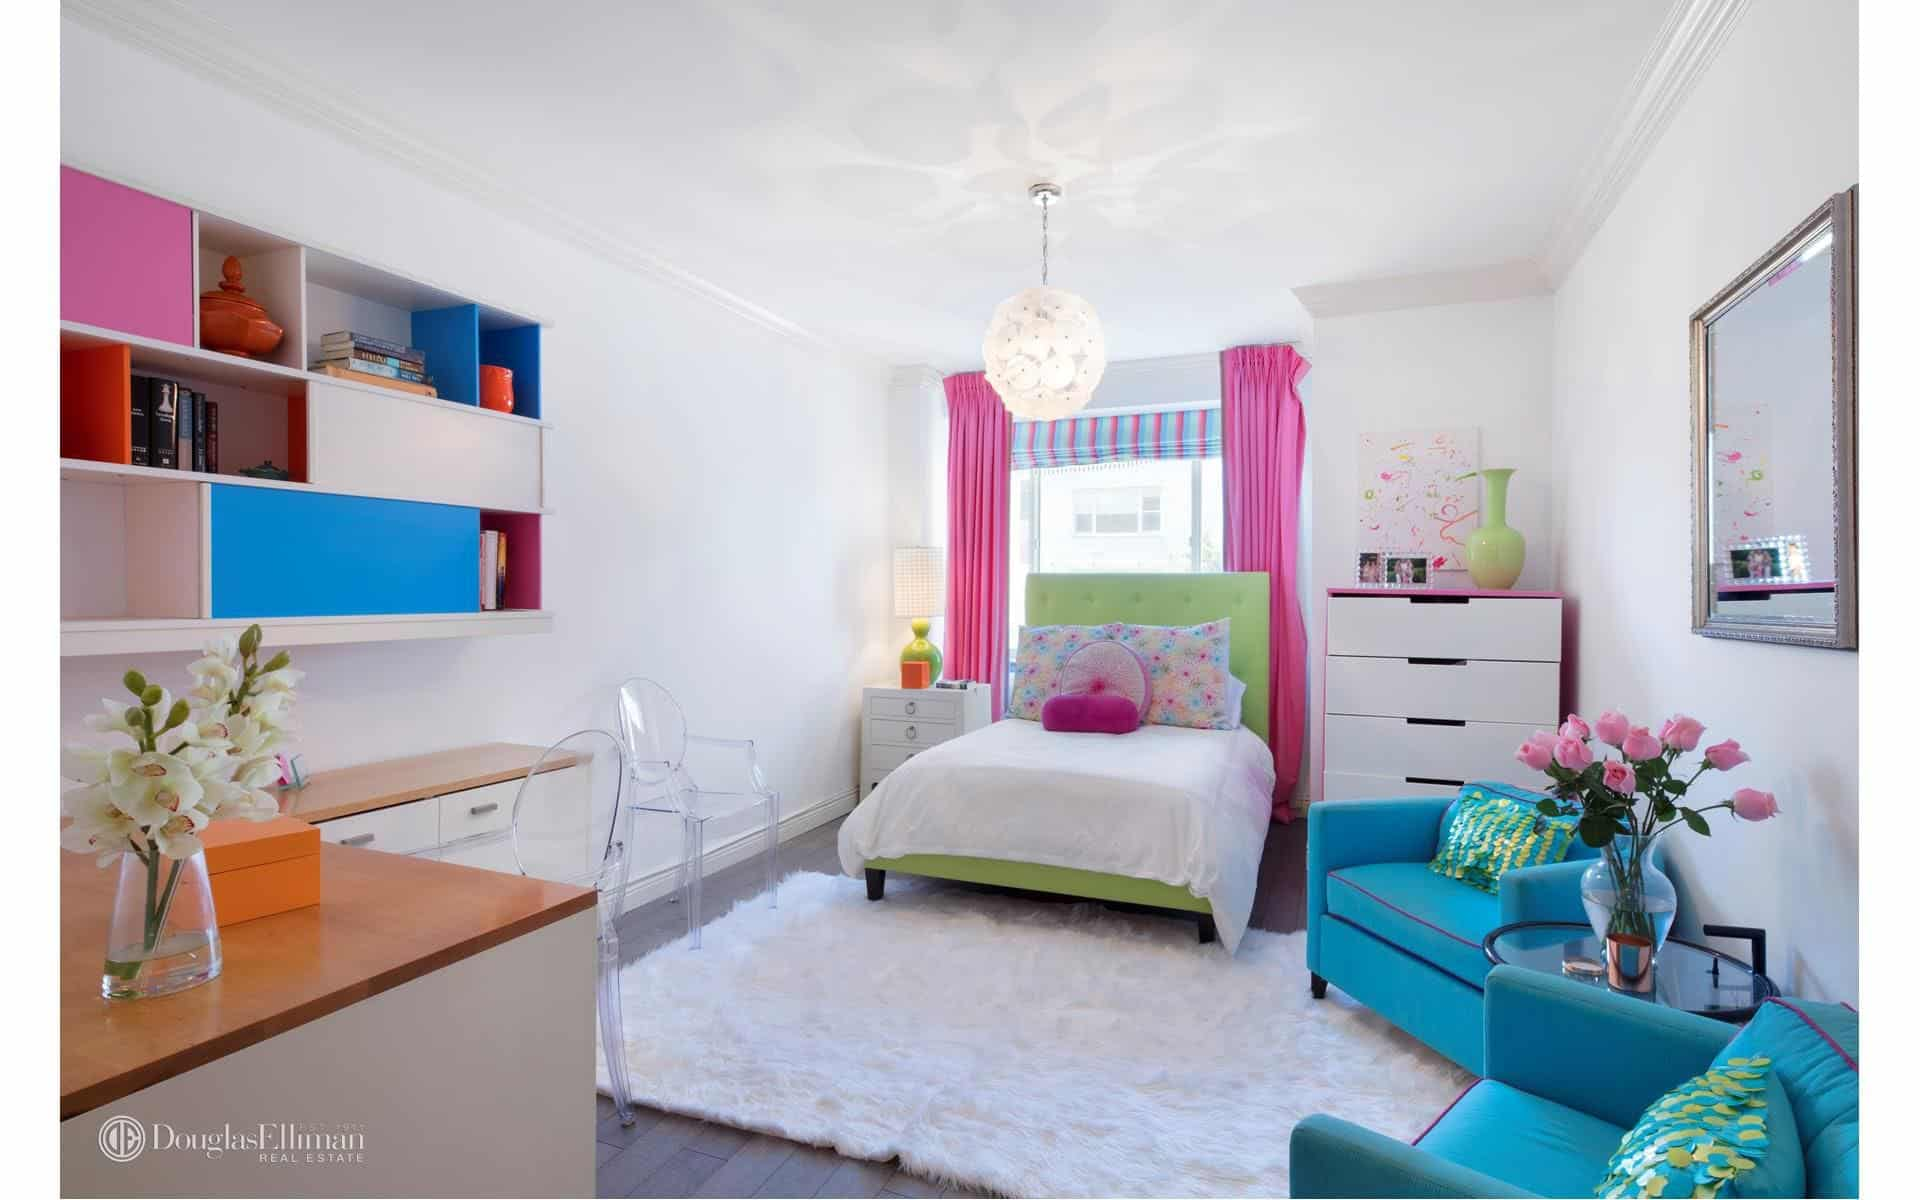 Thereu0027s Also A Kids Bedroom Featuring Colorful Furniture And A Classy Rug  Along With A Desk